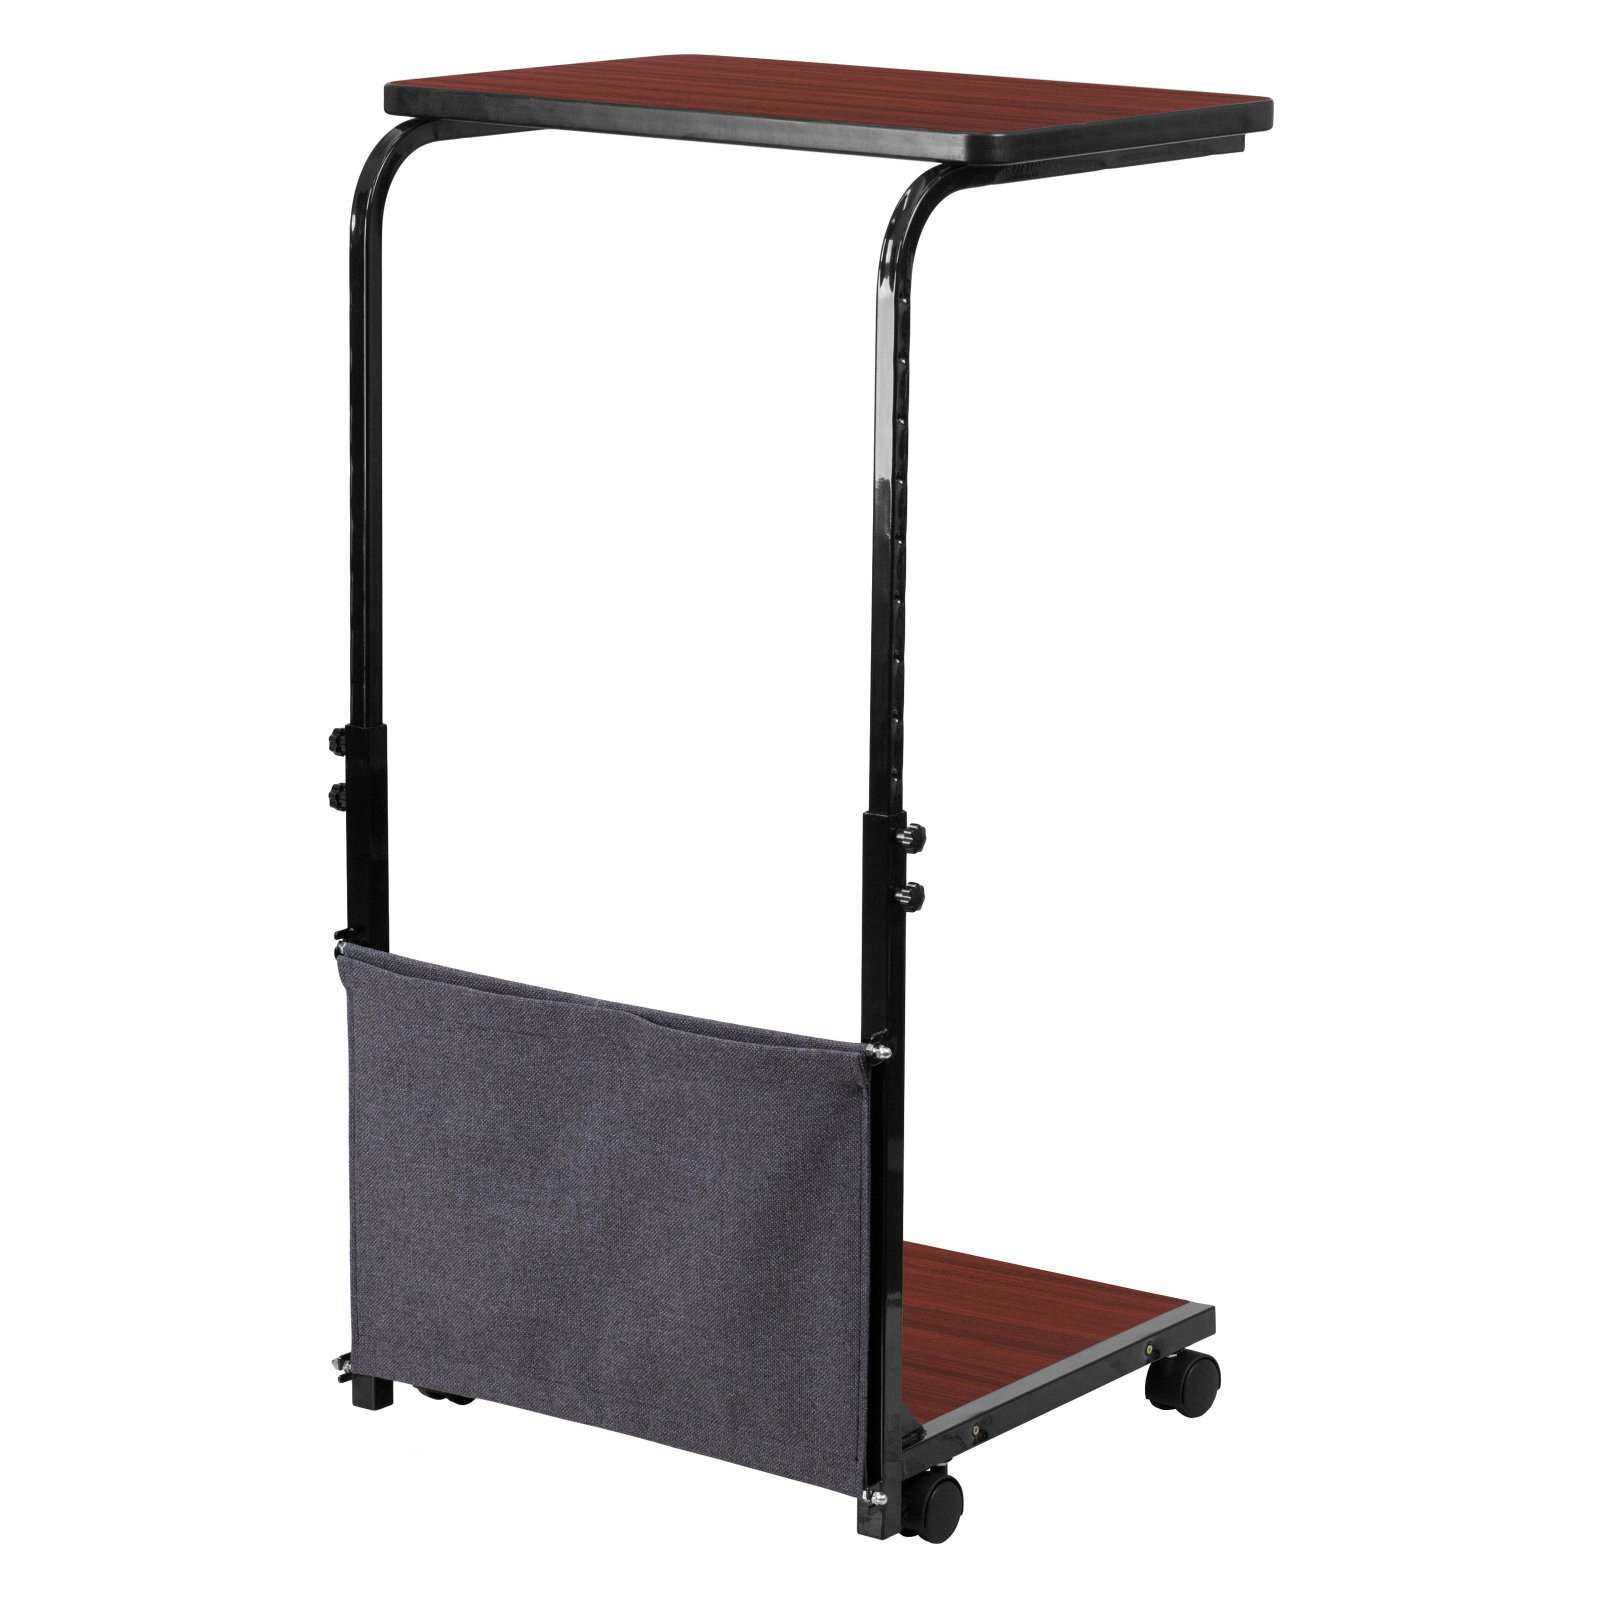 Mobile Sit-Down, Stand-Up Mahogany Computer Desk with Removable Pouch, Adjustable Range 27'' - 46.5'' + Expert Guide